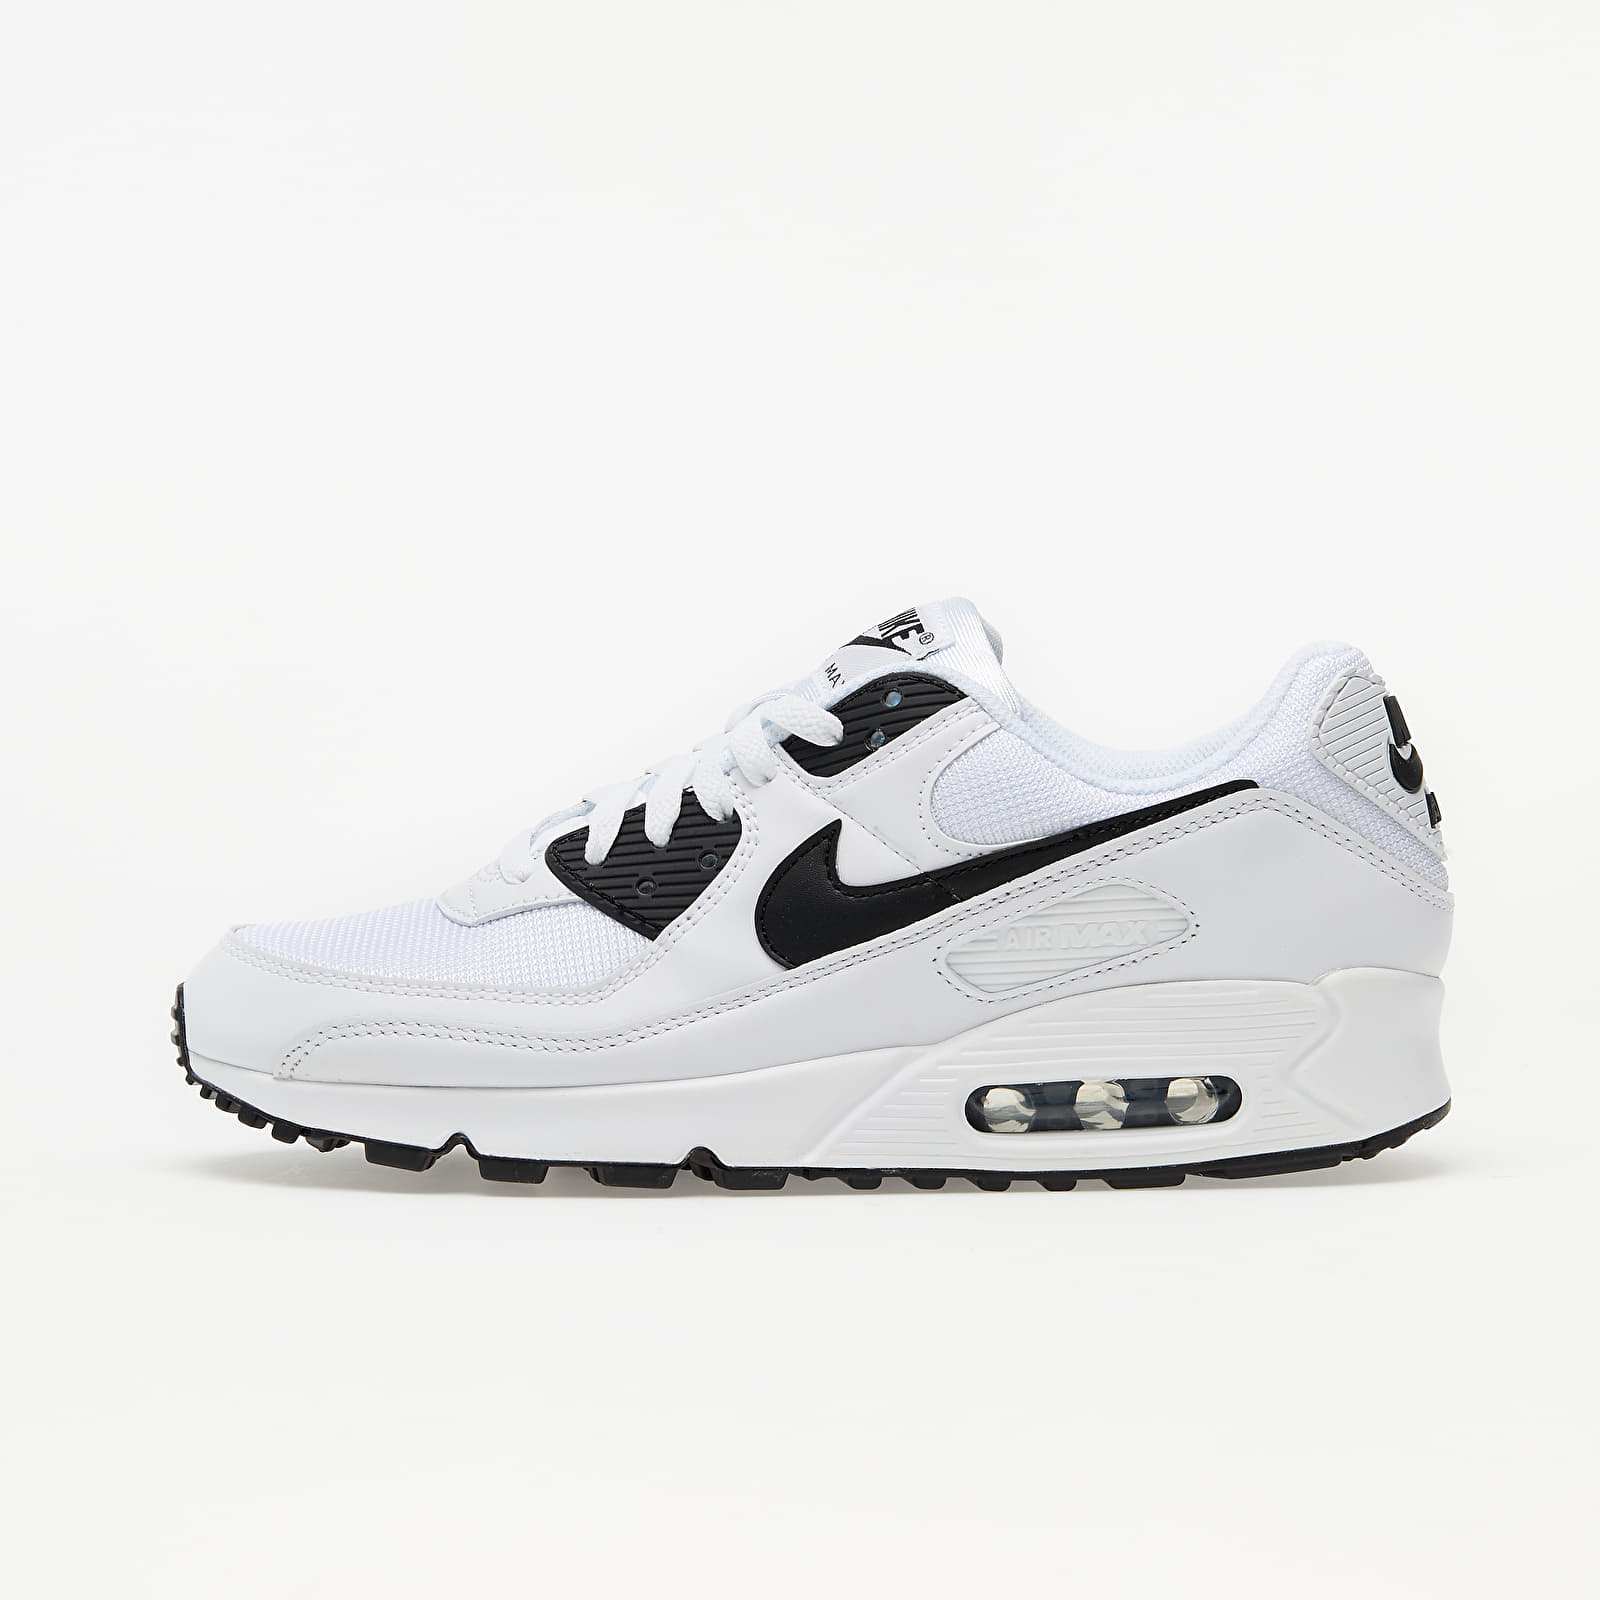 Nike Air Max 90 White/ Black-White EUR 40.5